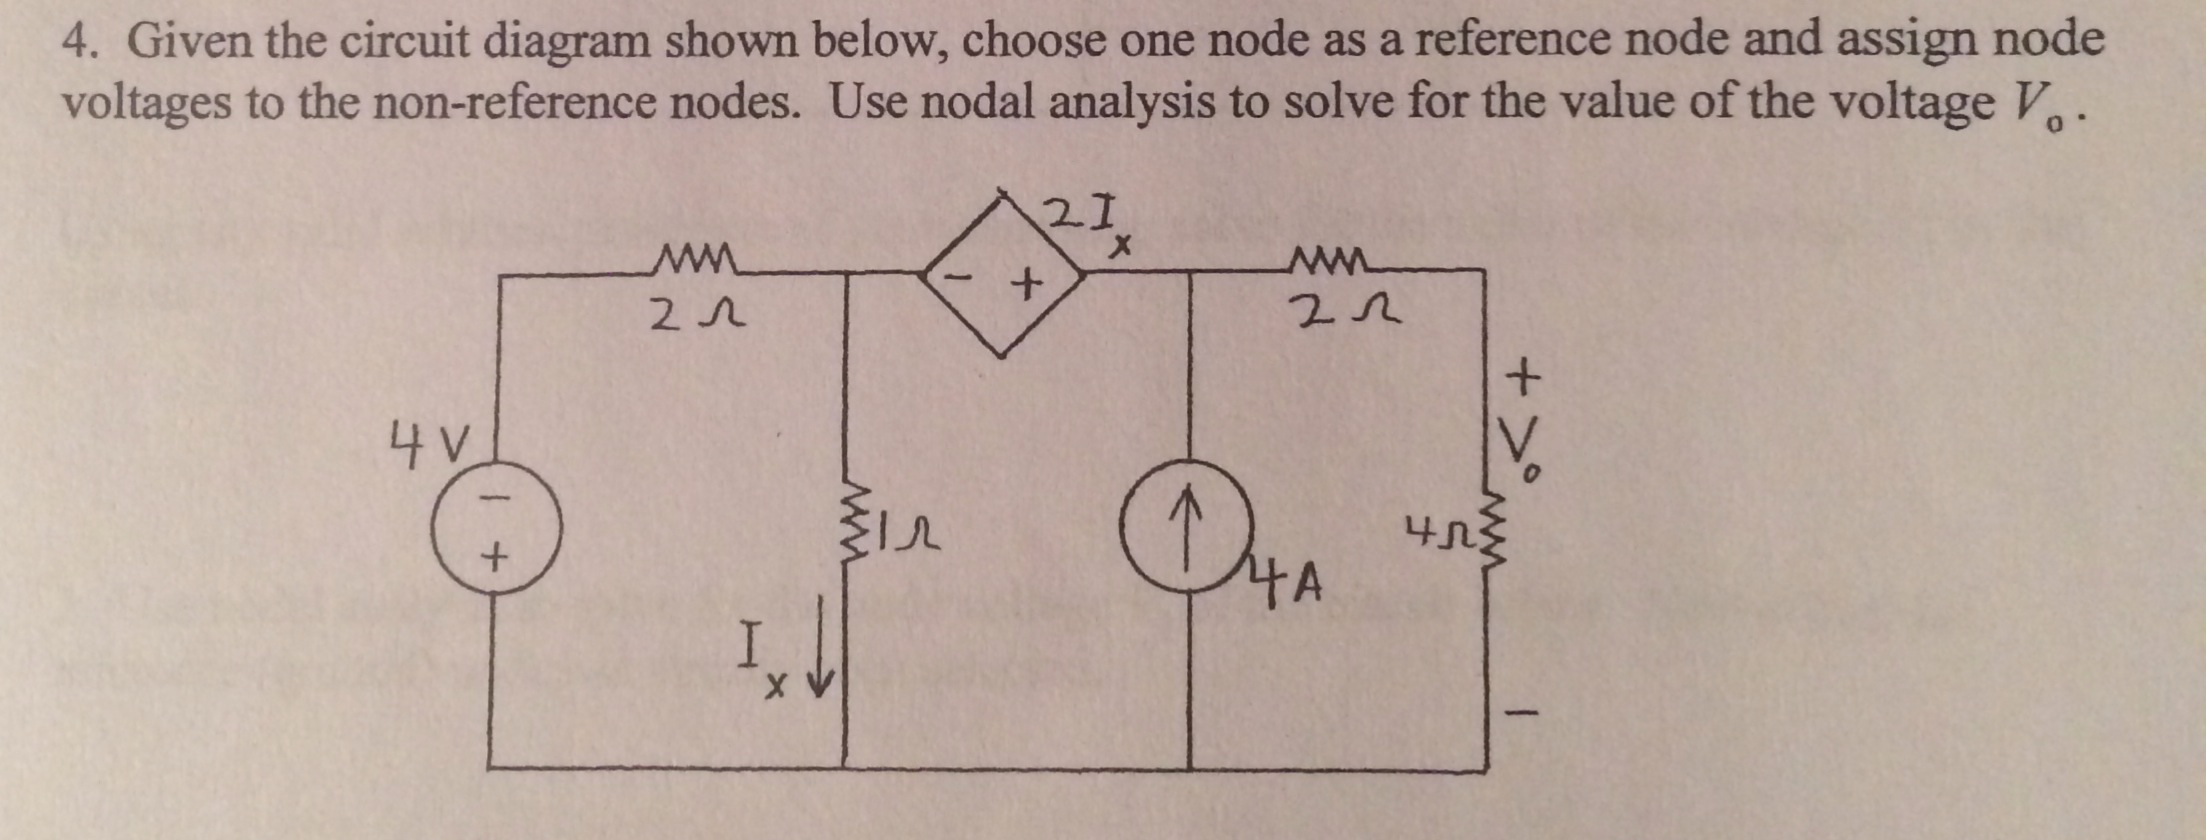 Given the circuit diagram shown below, choose one